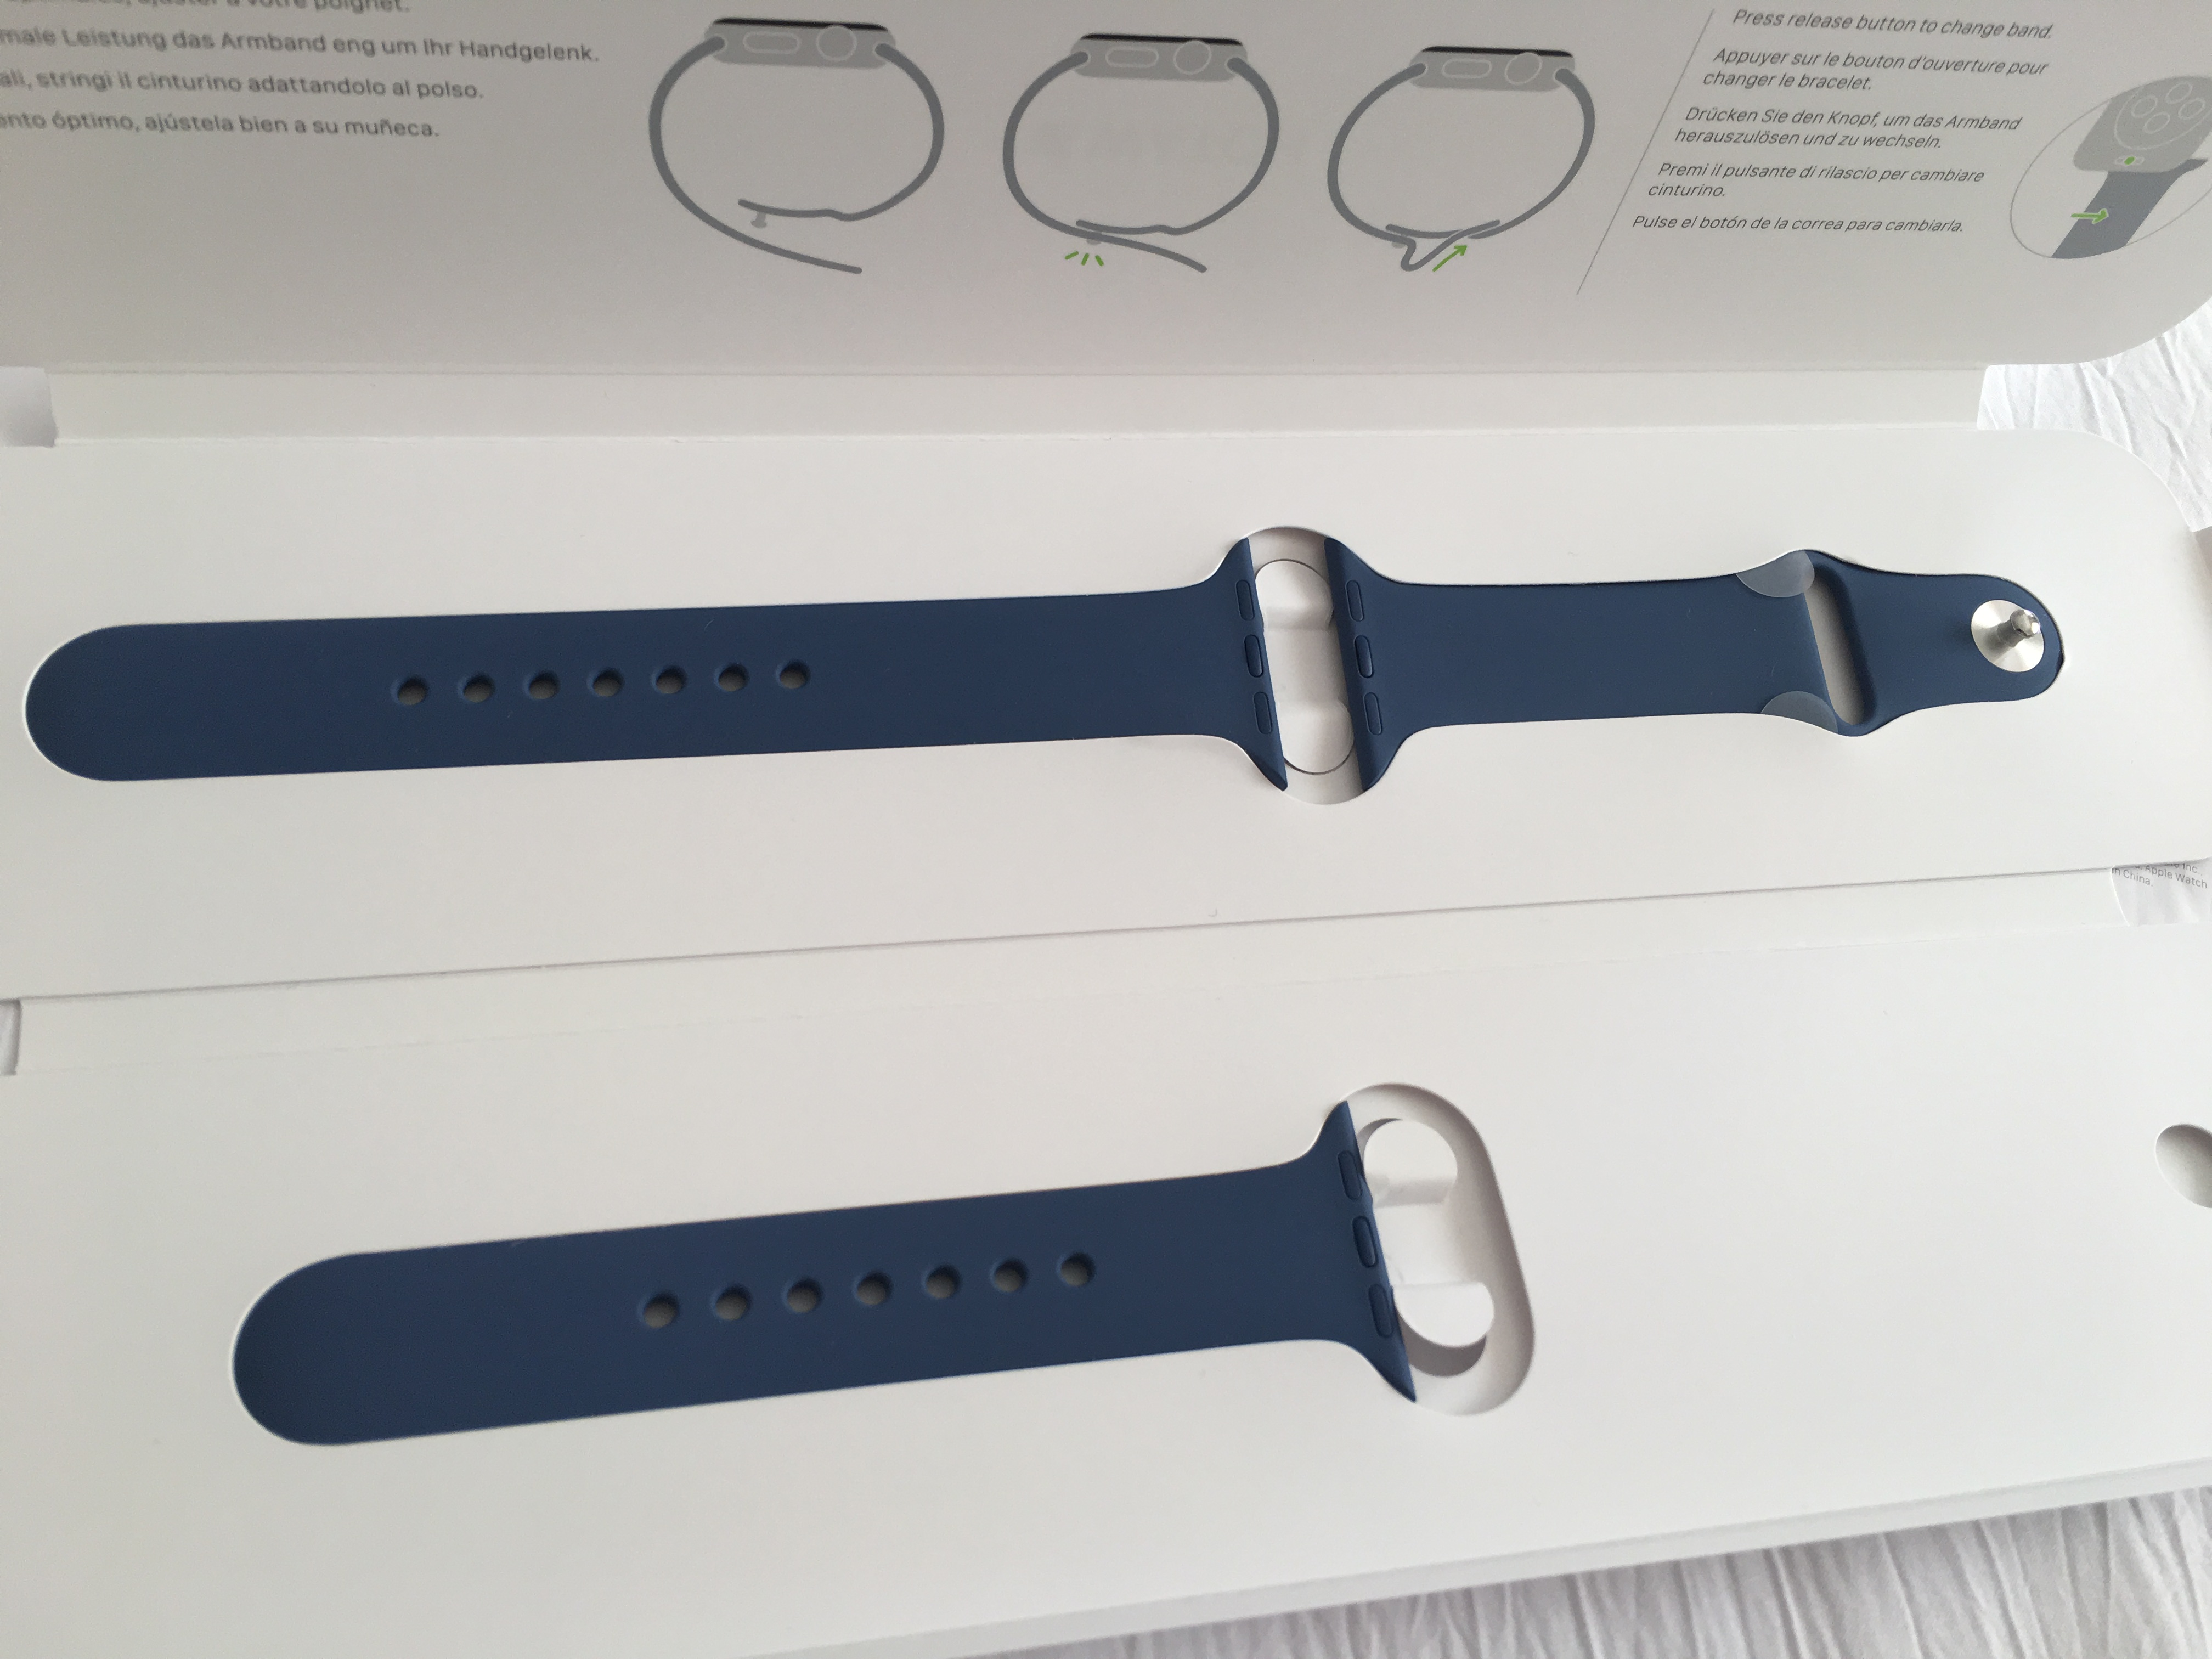 7bda59fe0 Just purchased the above sport bands today in store. Great colours but the  Ocean Blue has quite a purple tint to it in the sunlight. Is Concrete the  same as ...